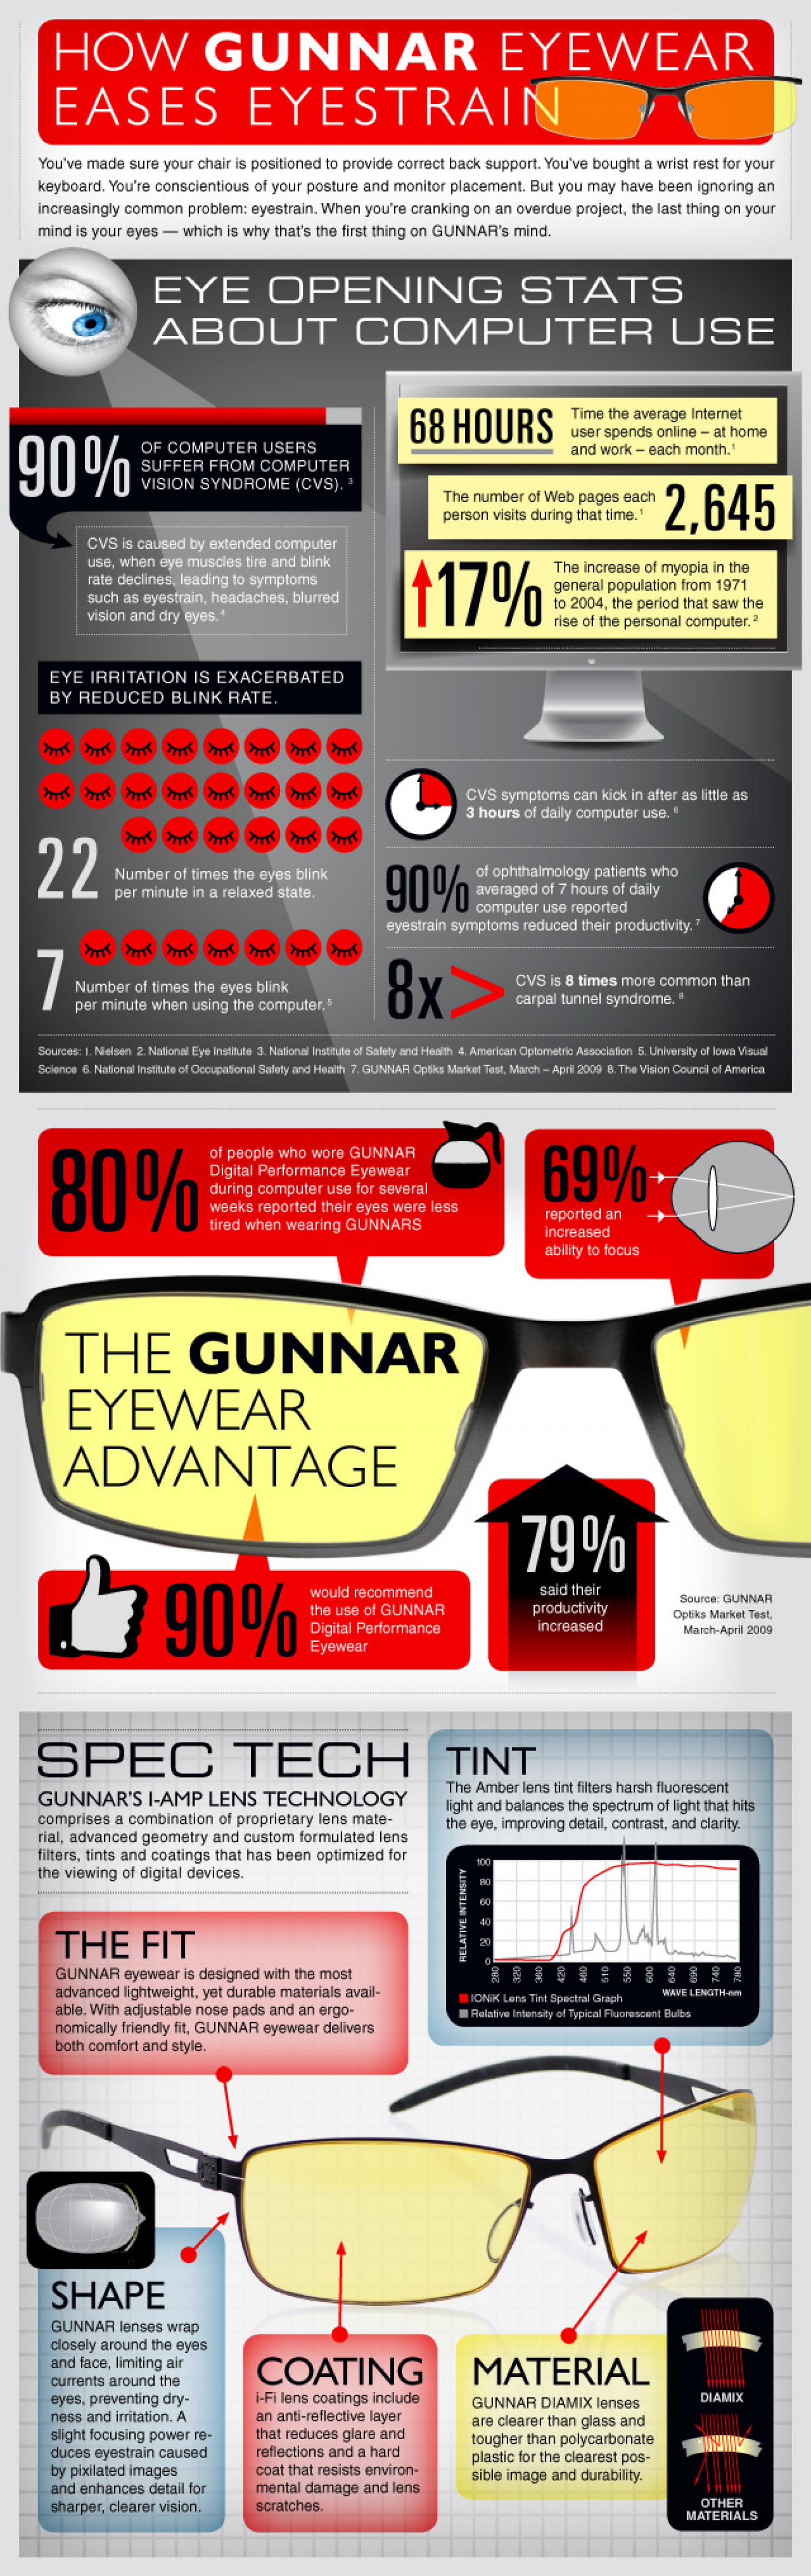 How Gunnar Eyeware Eases Eyestrain Infographic